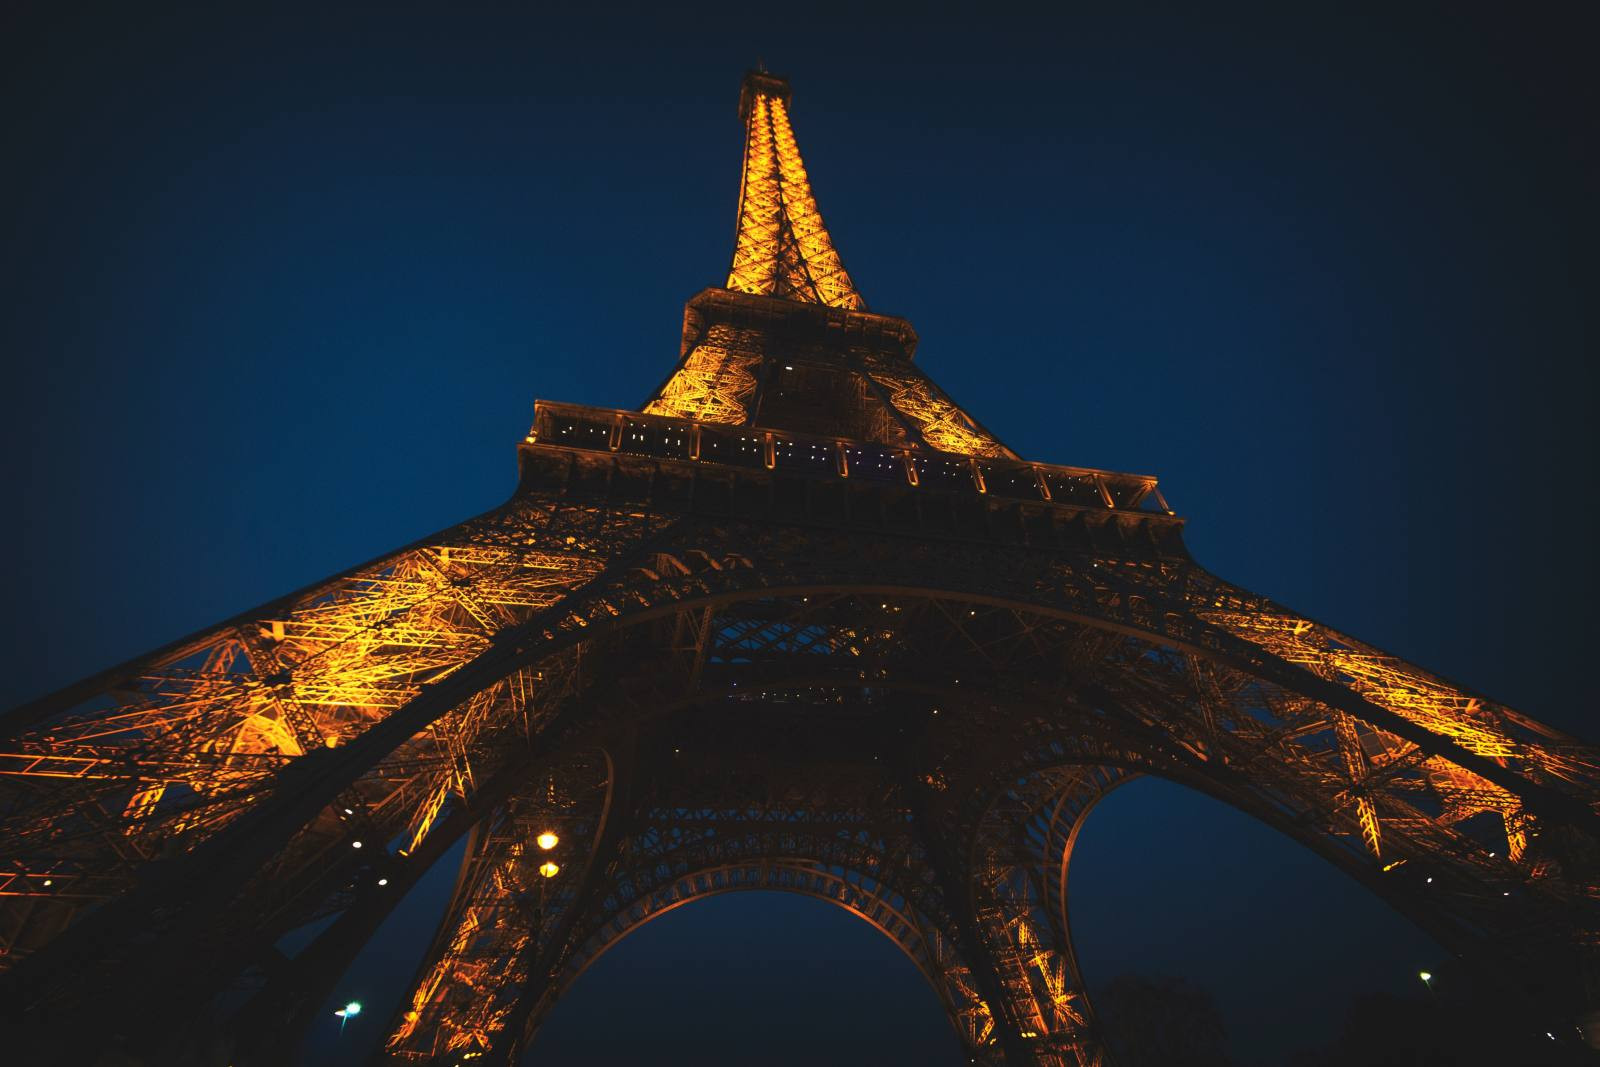 free trip planner to help organise your trip to paris